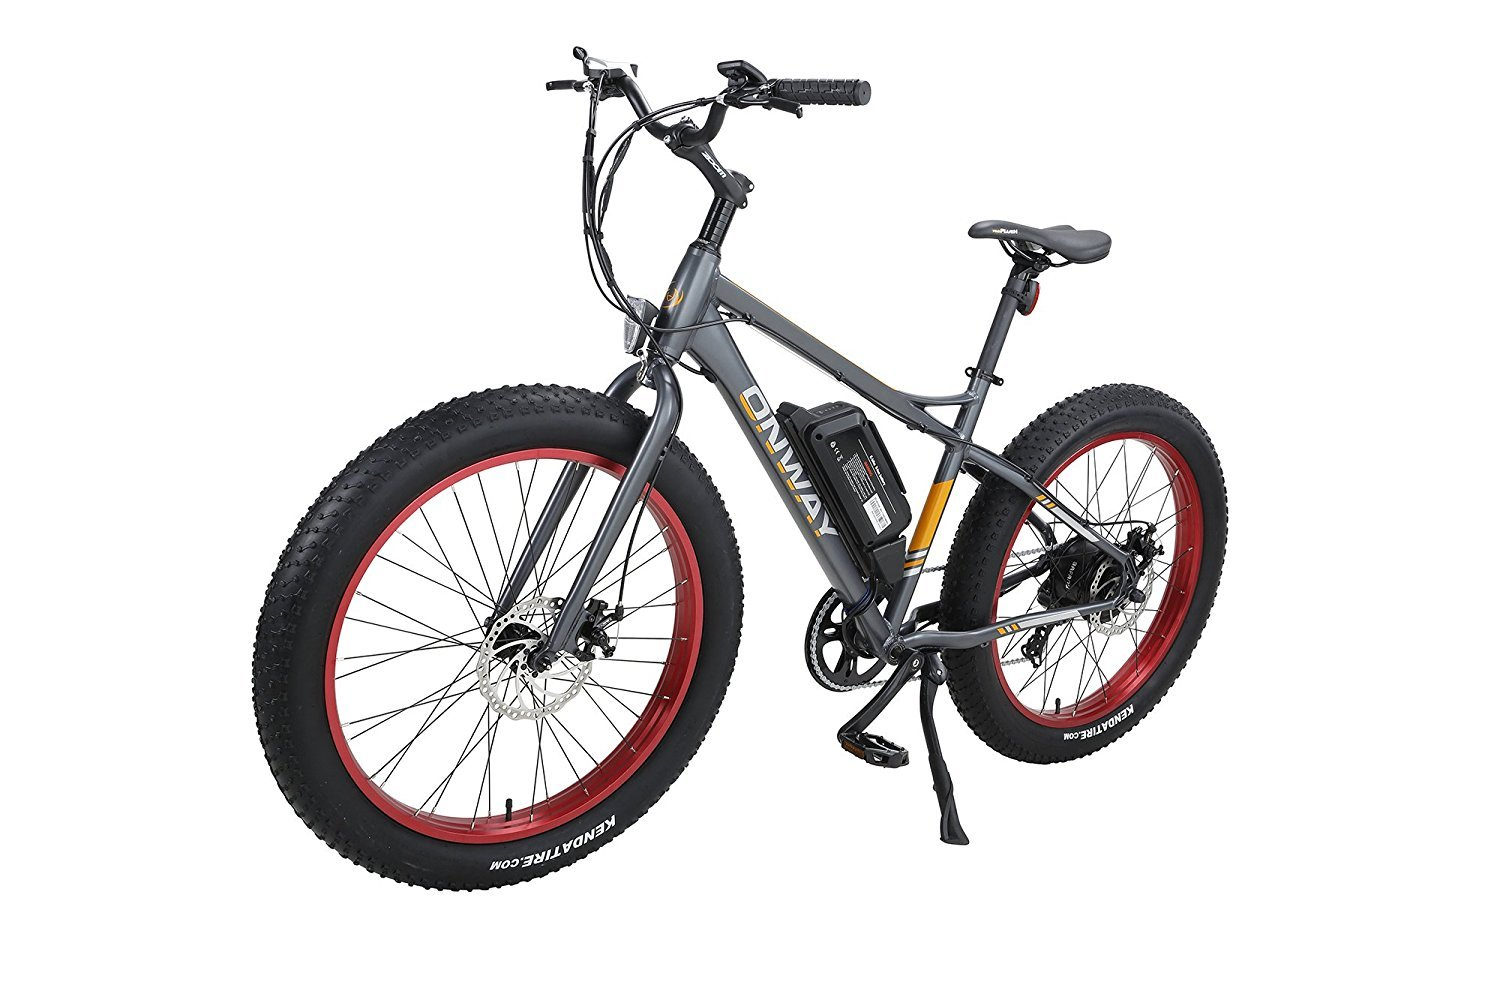 Onway 26'' 500W Powers Plus Electric Mountain Bike Pedal assist Electric Bicycle with Removable Lithium-Ion Battery for All Terrain Riding